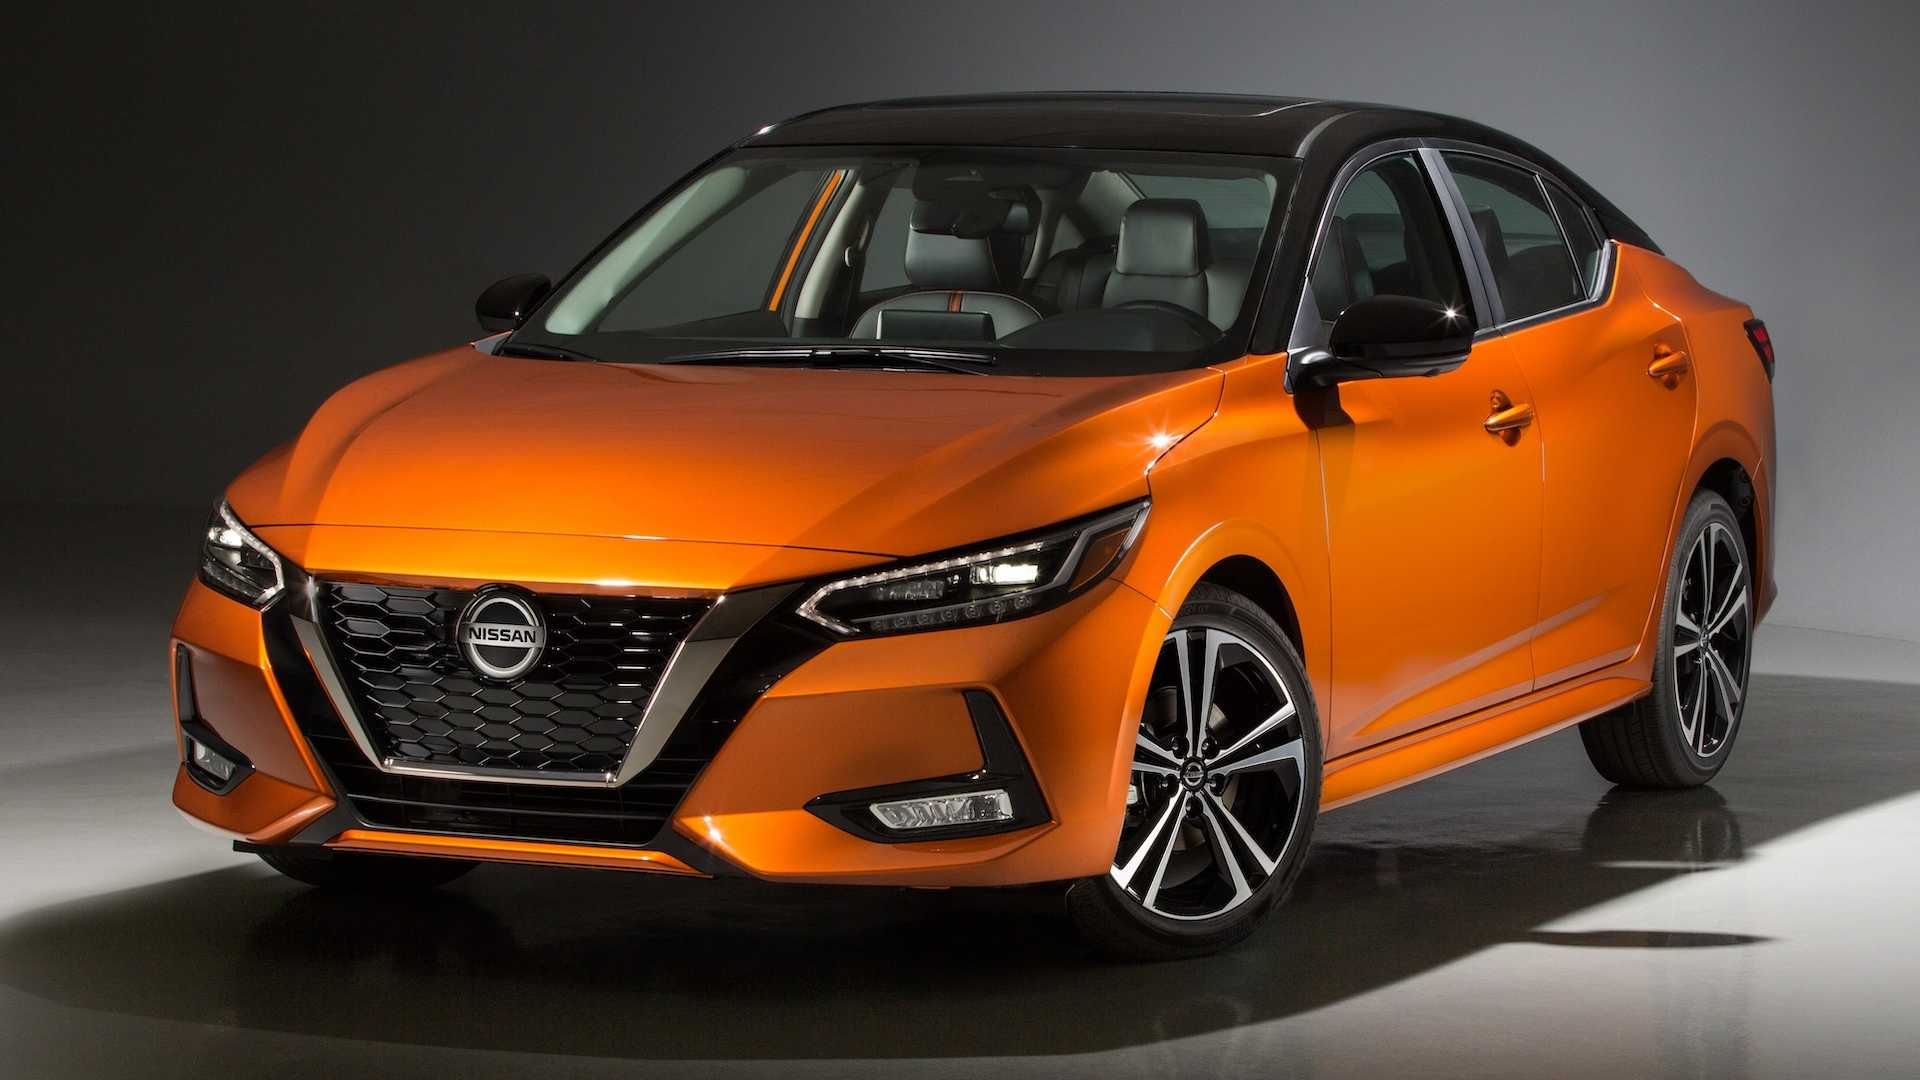 2020 Nissan Sentra Starts At 19 090 Top Trim Costs 21 430